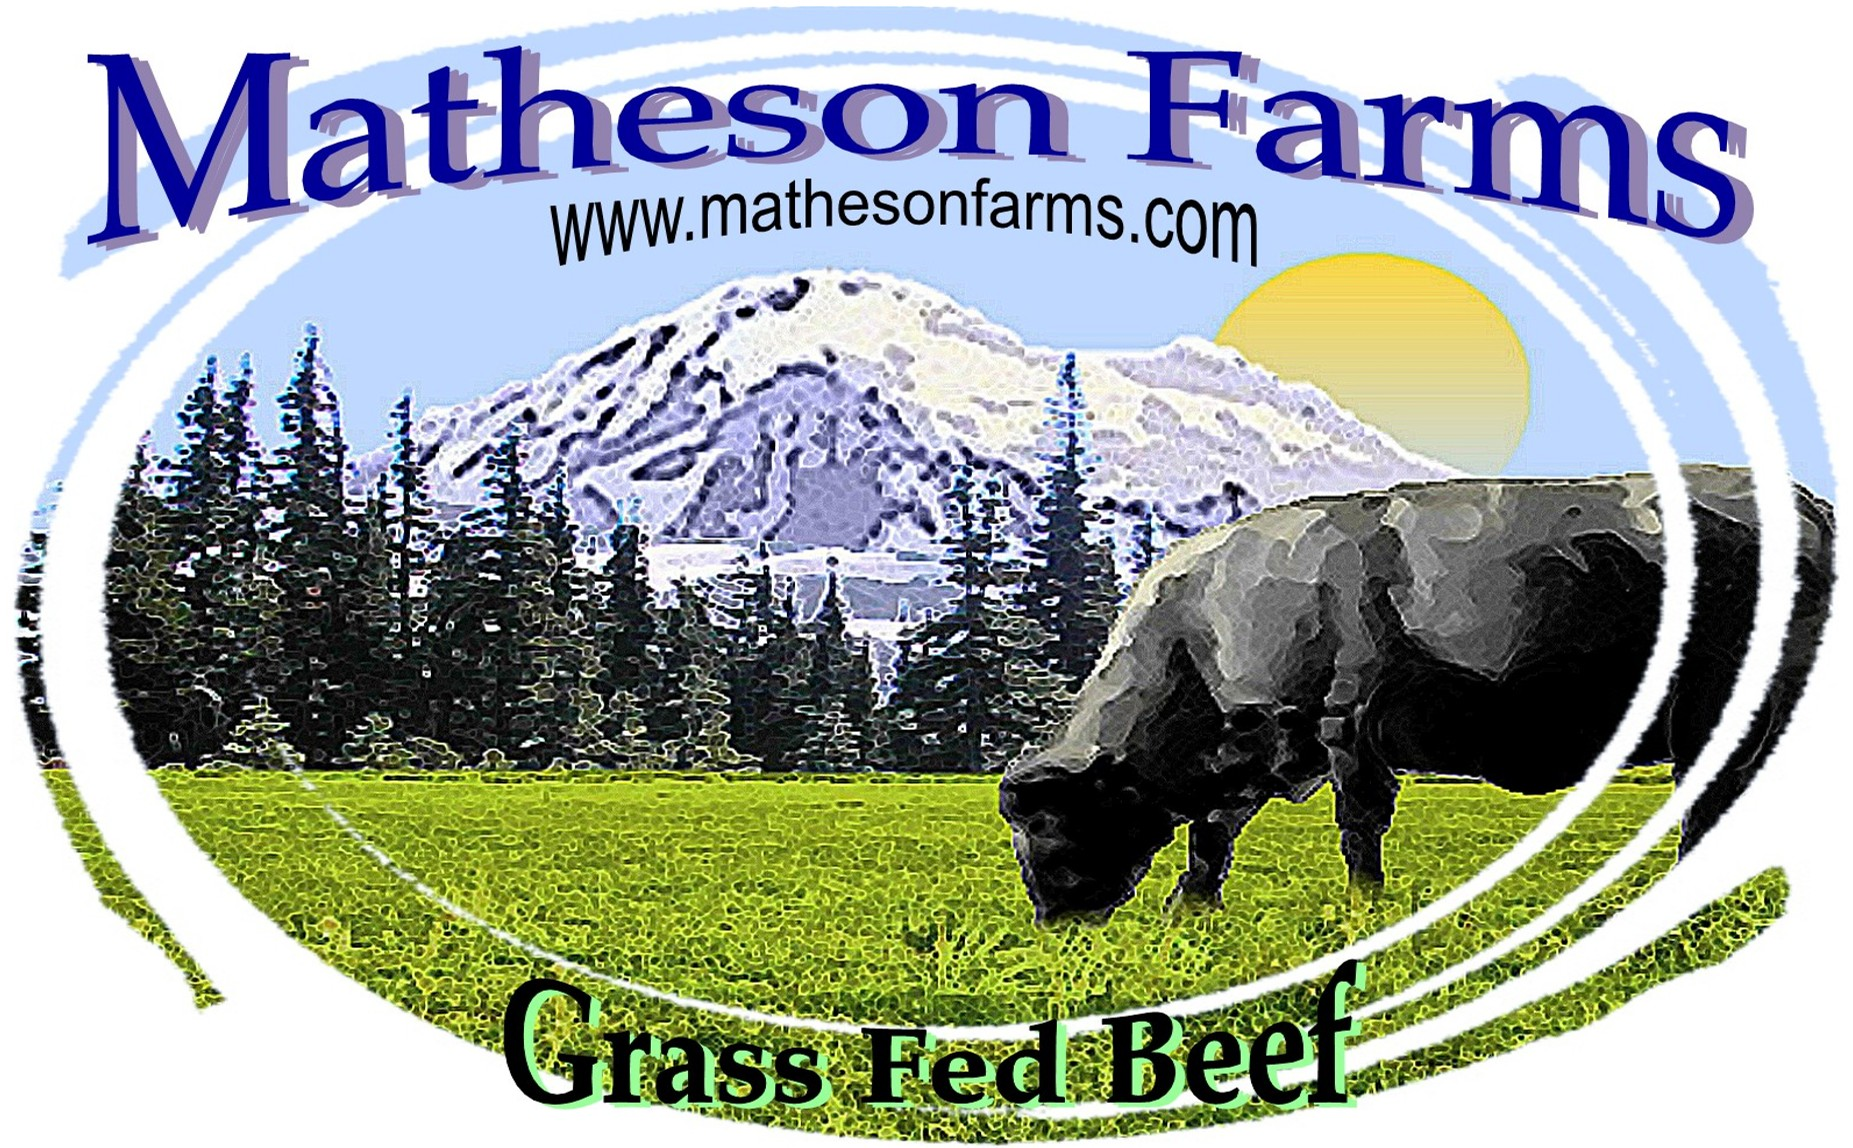 Buy organic beef - The Logo For Matheson Farms Grass Fed Beef